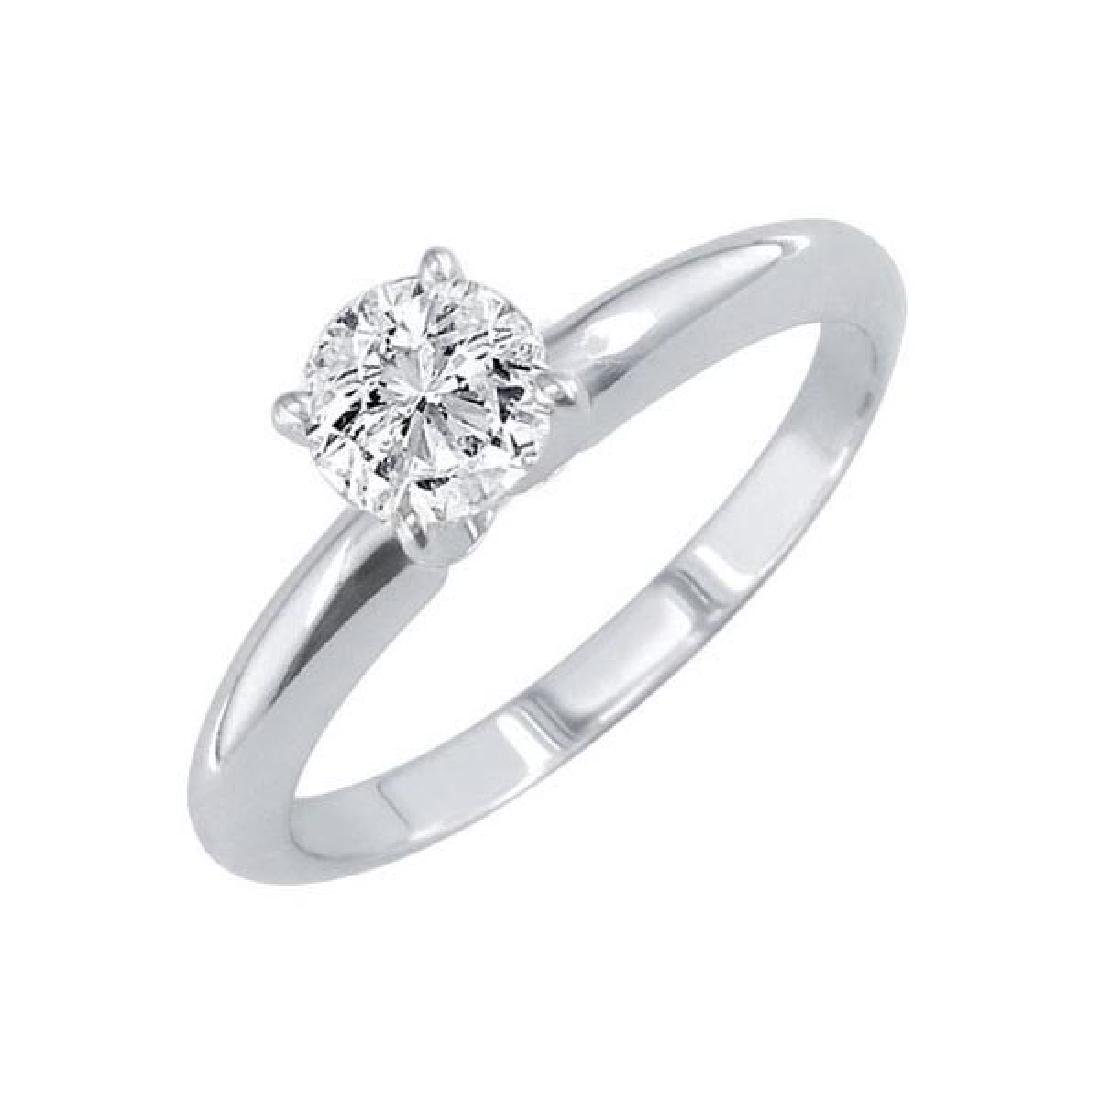 Certified 1 CTW Round Diamond Solitaire 14k Ring F/SI3